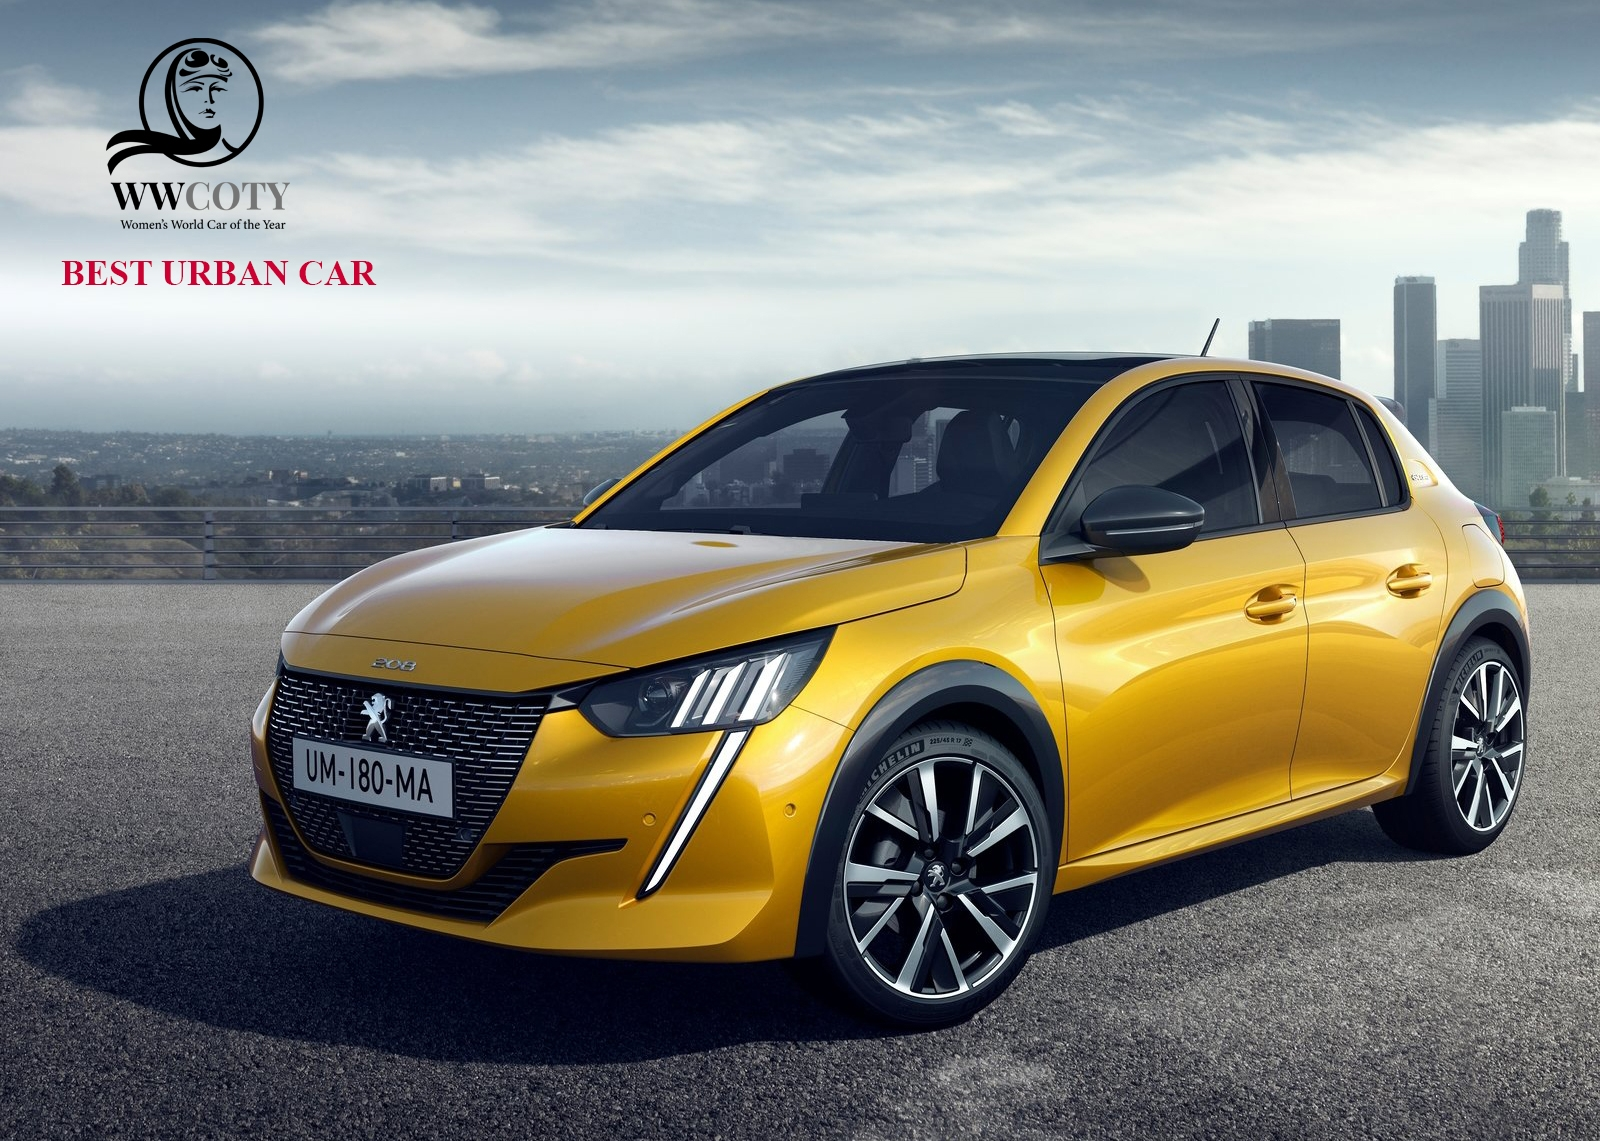 Peugeot 208 Women's World Car of the Year